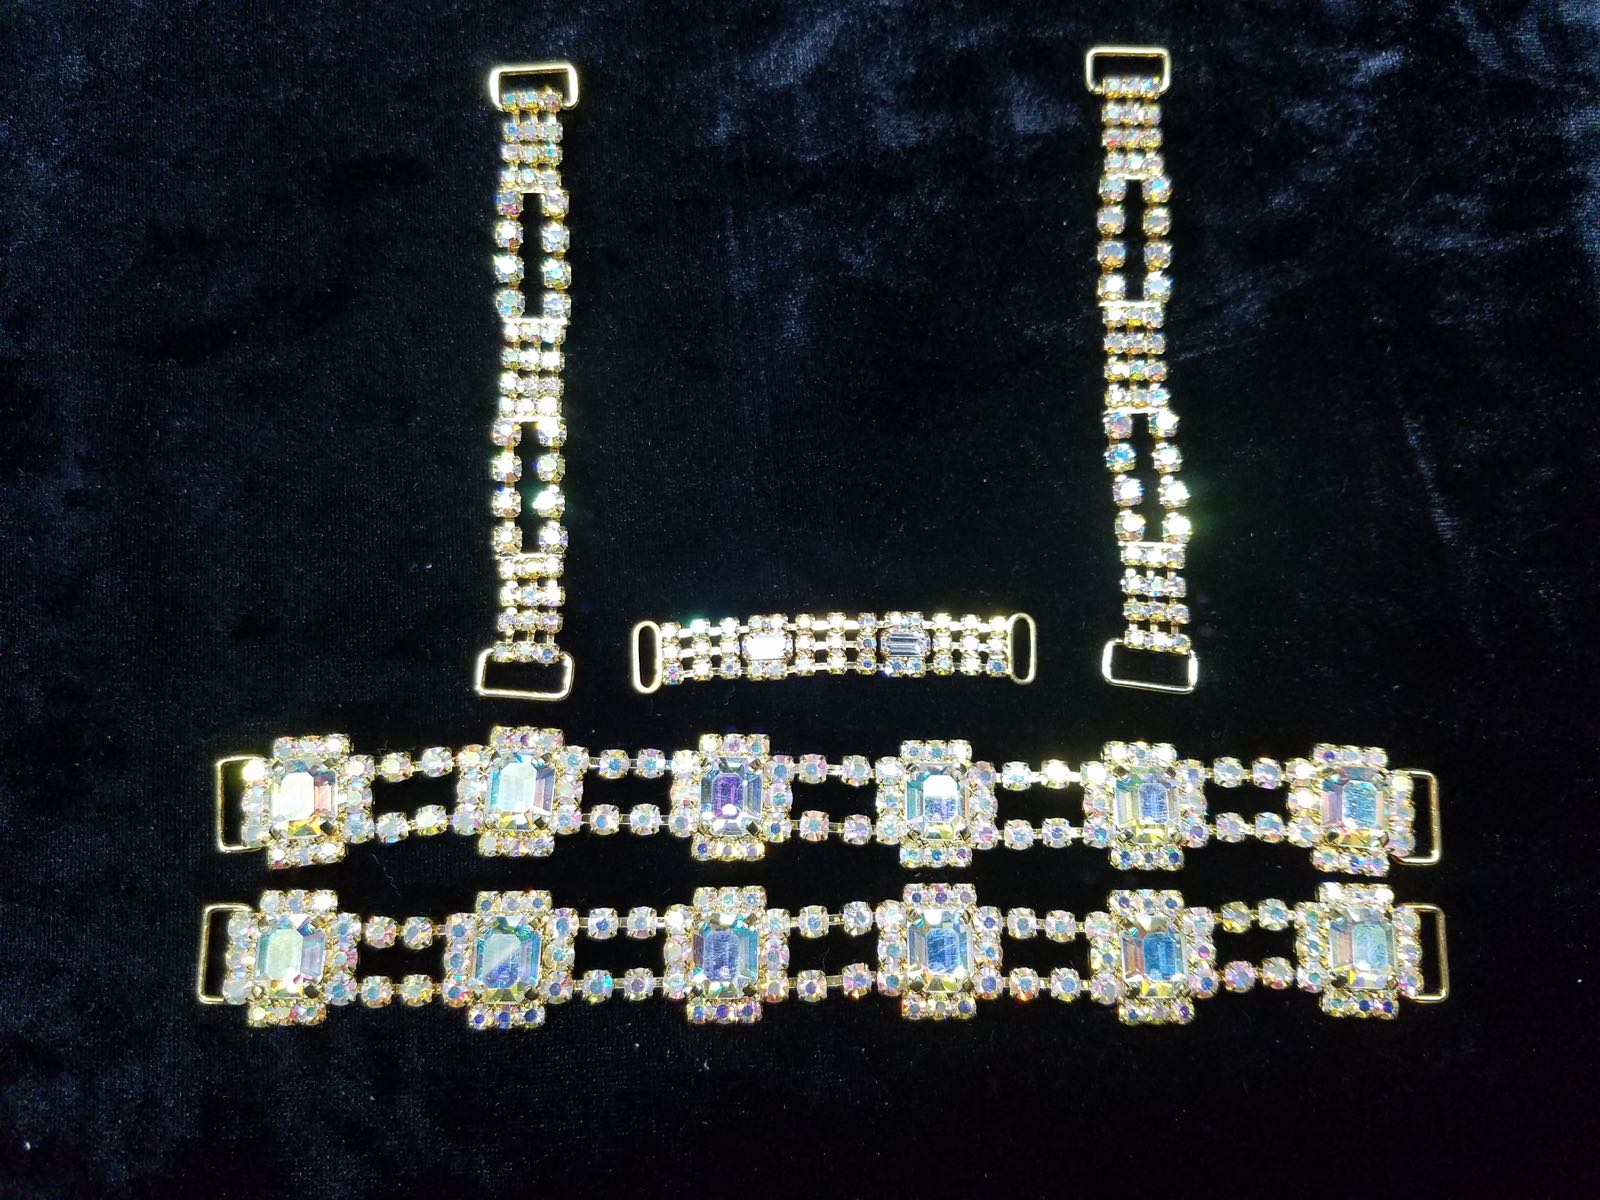 Set I, Silver with clear aurora borealis crystals, $65.00